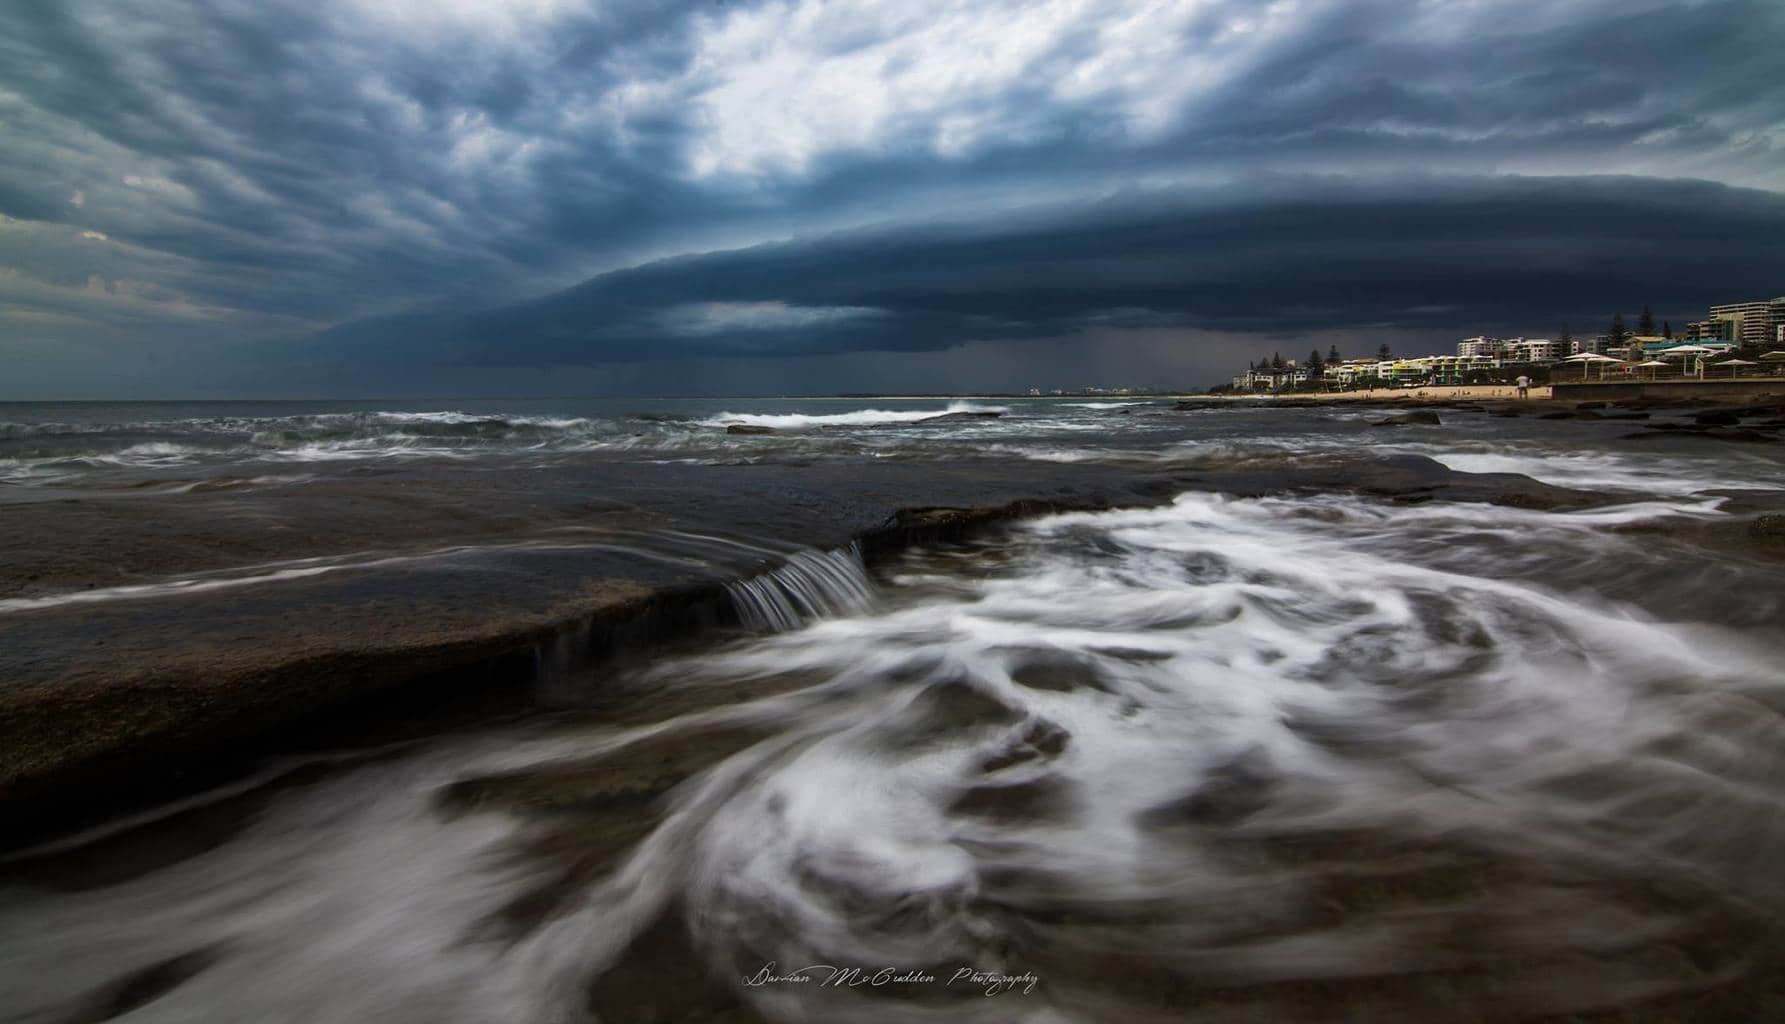 Hey guys,  I took this shot of a storm front crossing Kings Beach, Australia a few weeks ago smile emoticon  Hope you like it!